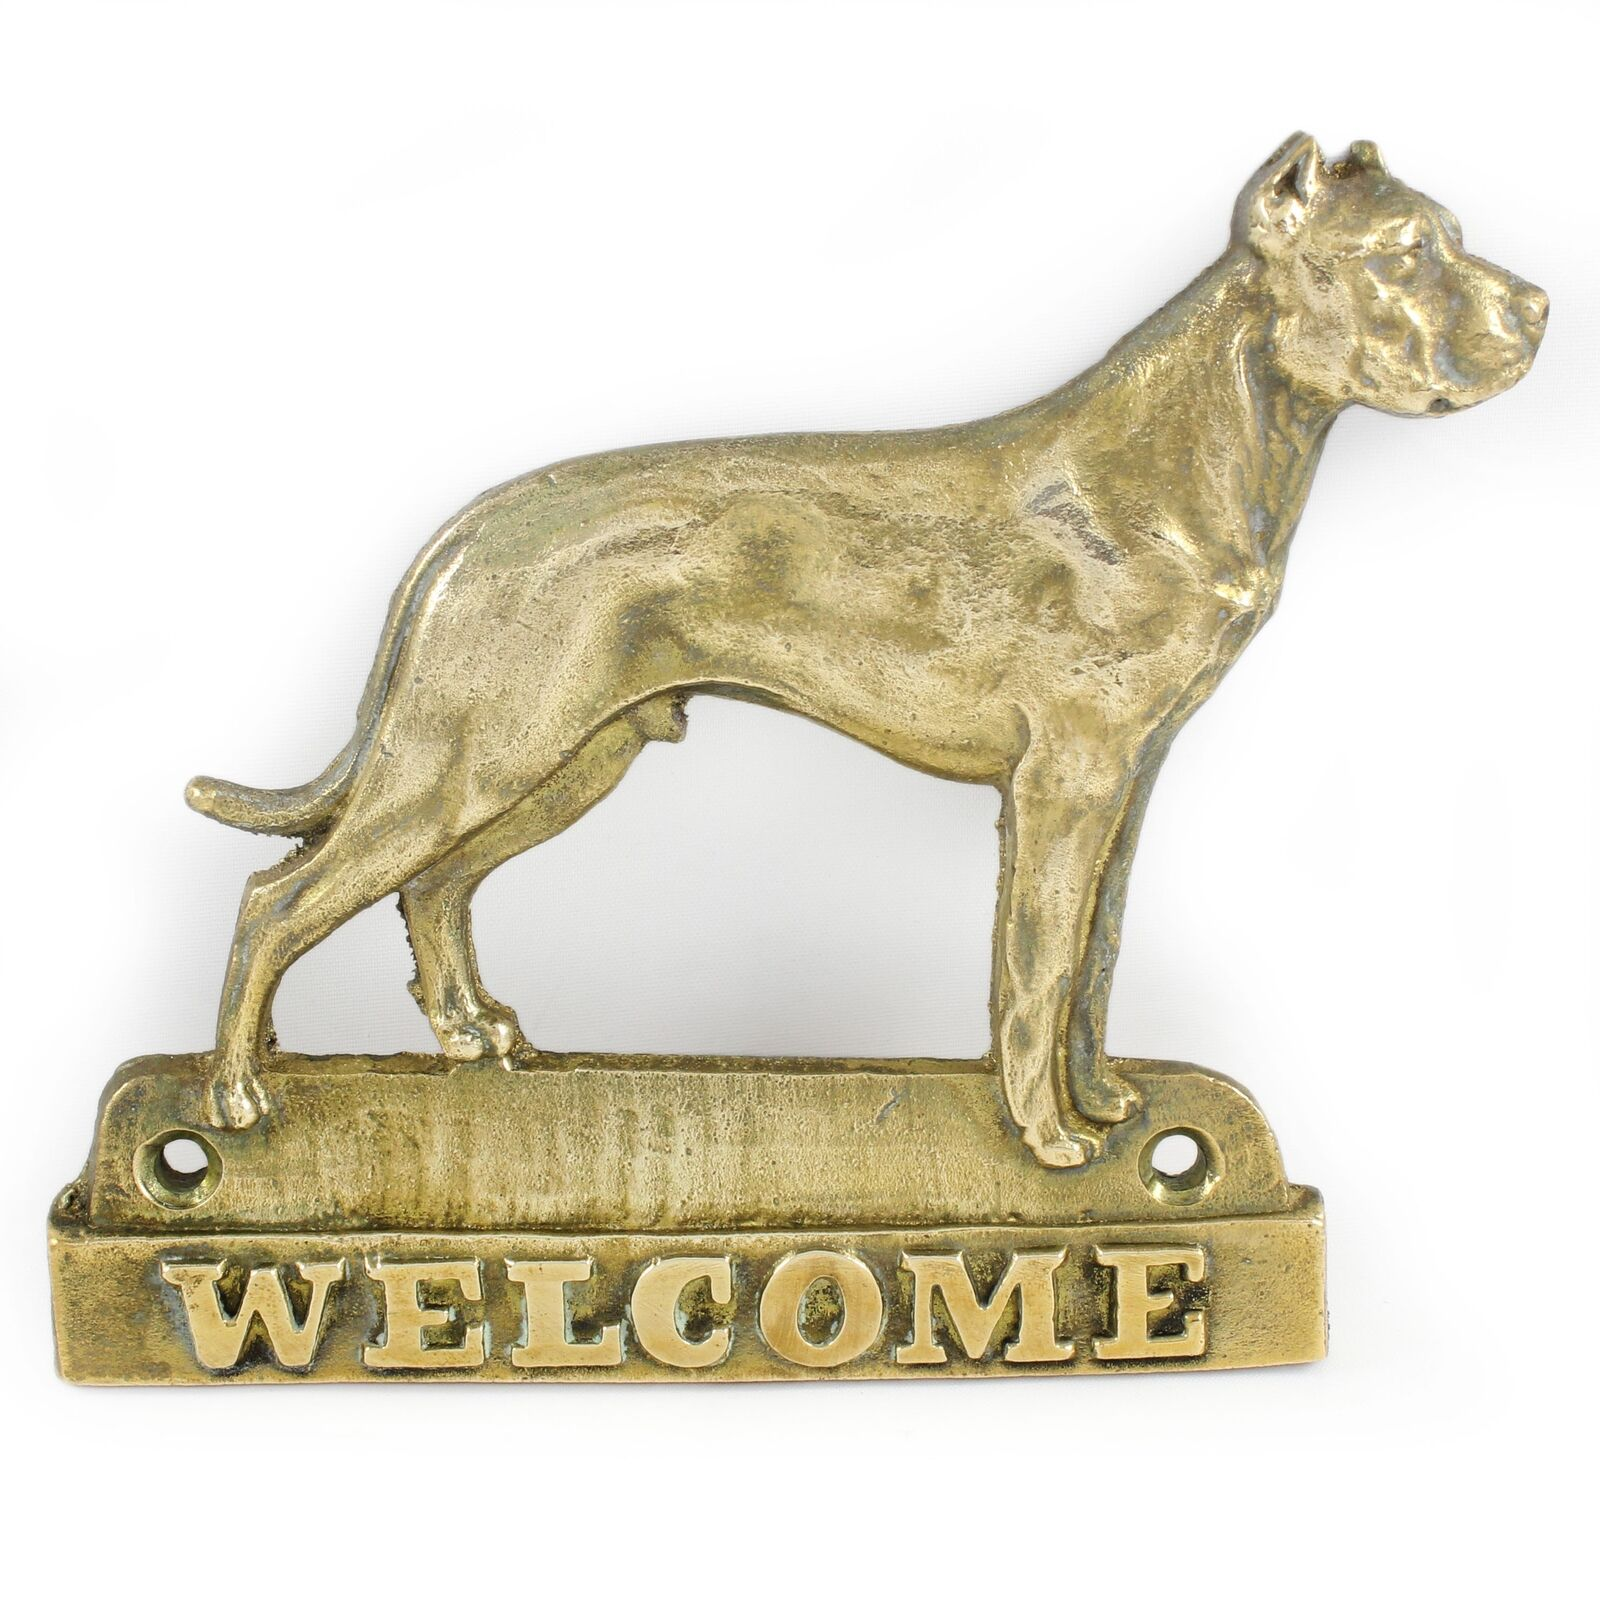 Dogo silverino - brass tablet with image of a dog, Art Dog